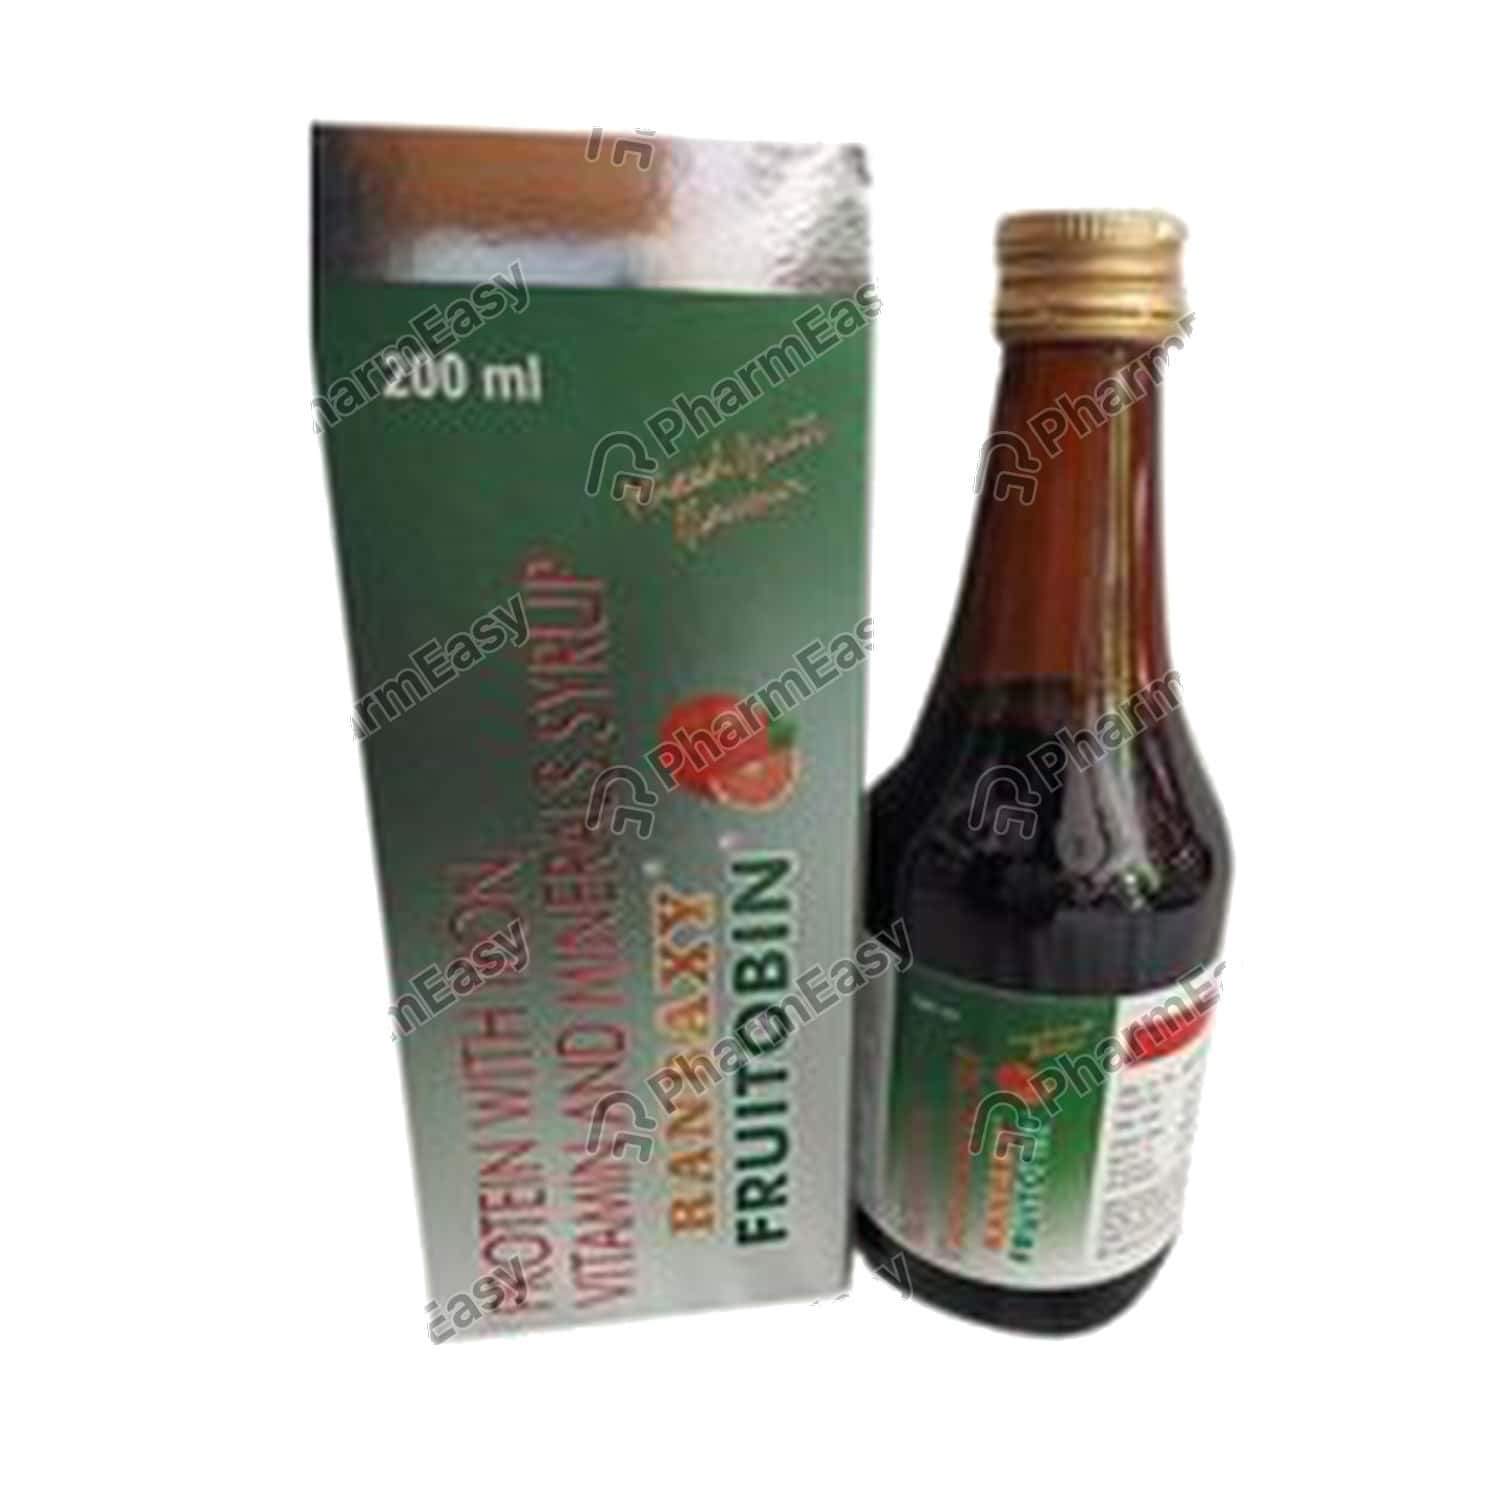 Fruitobin Mixed Fruit Flavour Syrup 200ml